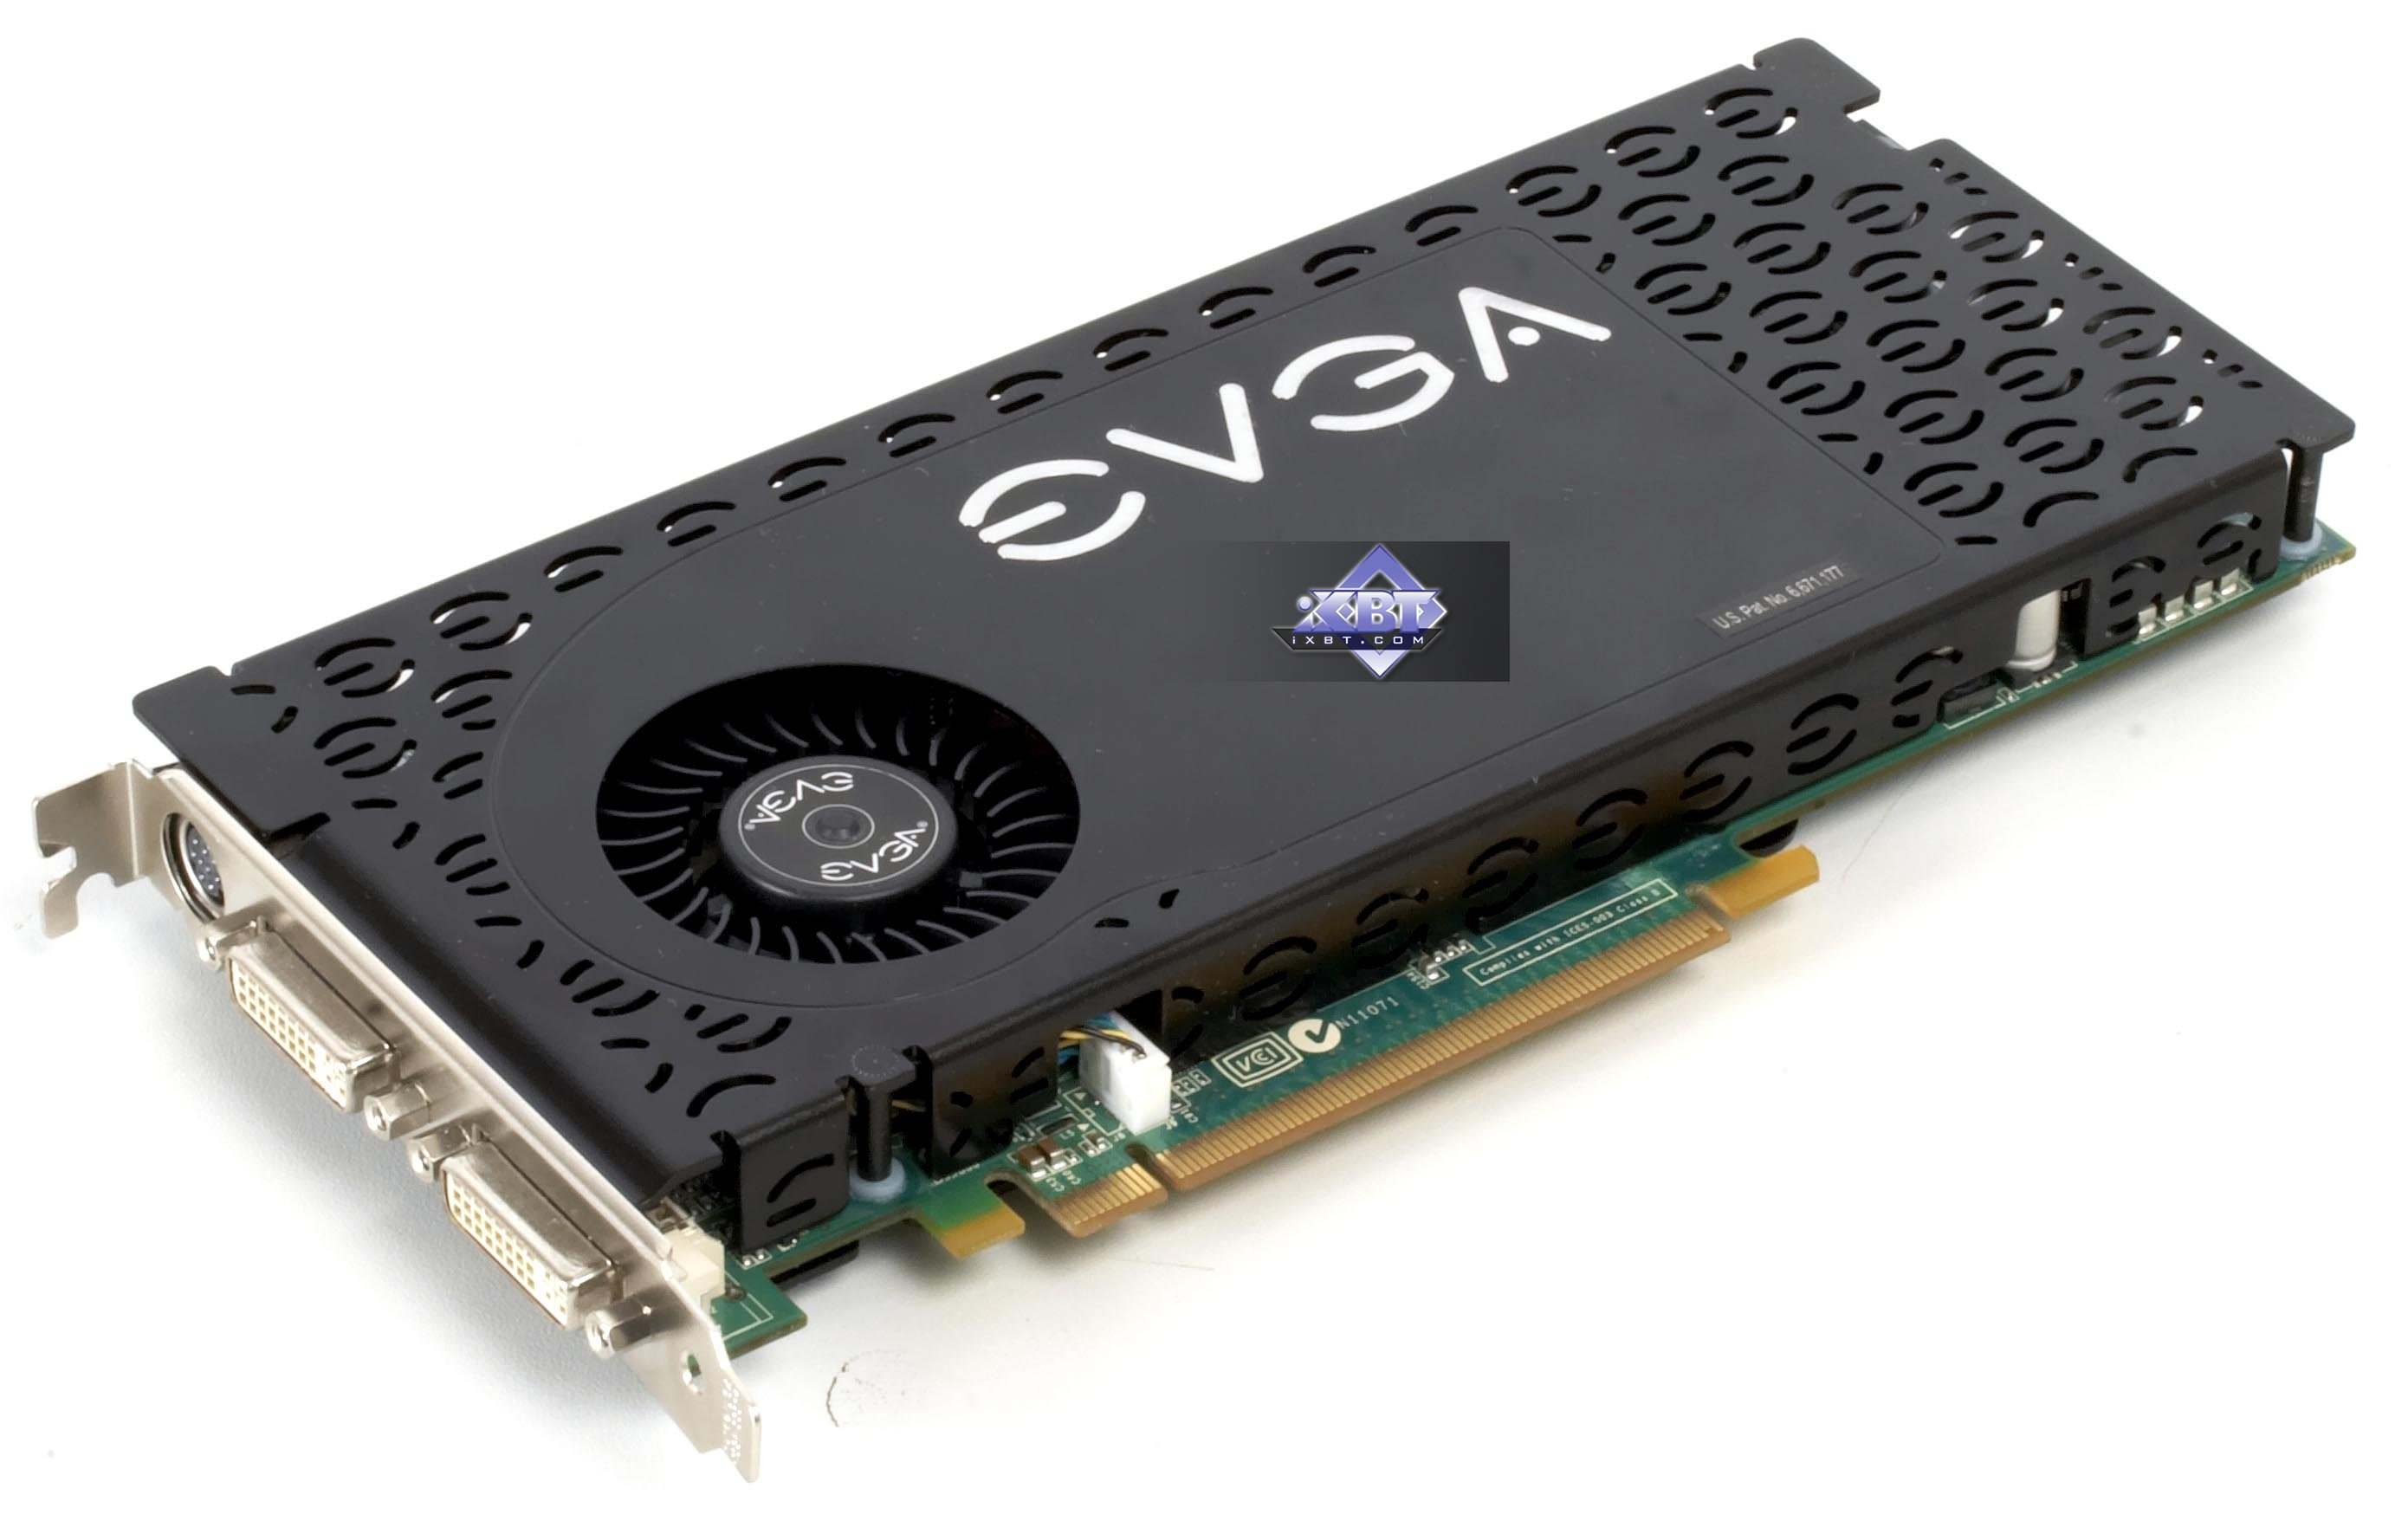 http://www.ixbt.com/video2/images/g70-11/evga-7800gtx-cooler.jpg